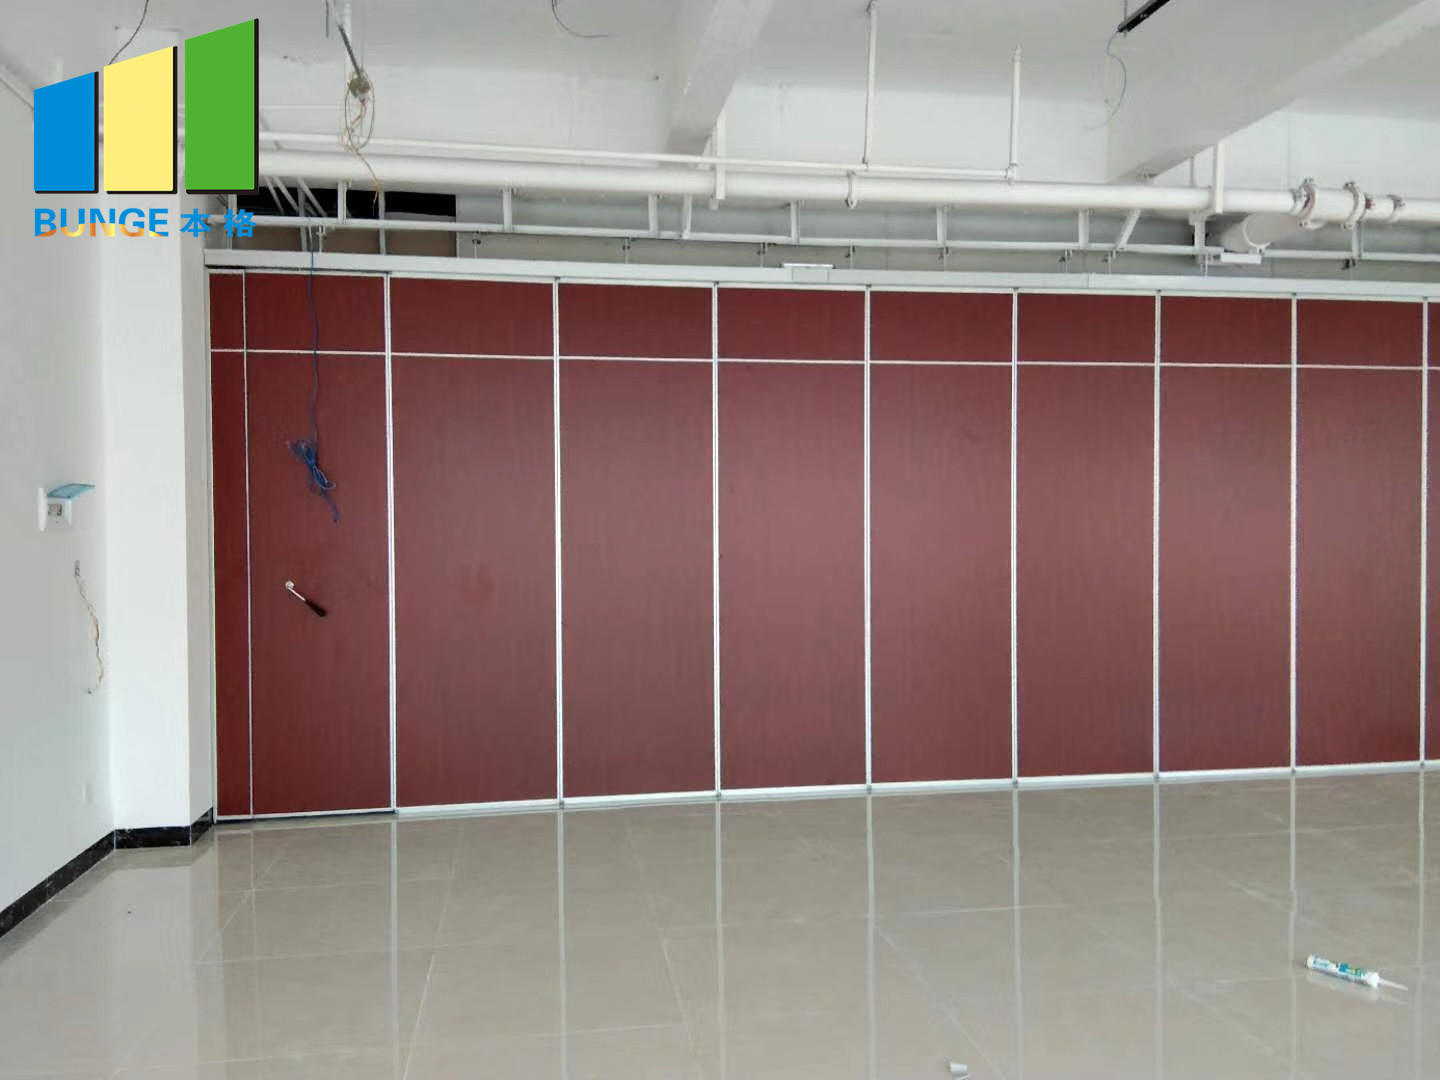 Bunge-Find Partition Wall Material Aluminum Frame Retractable Operable Sliding-1